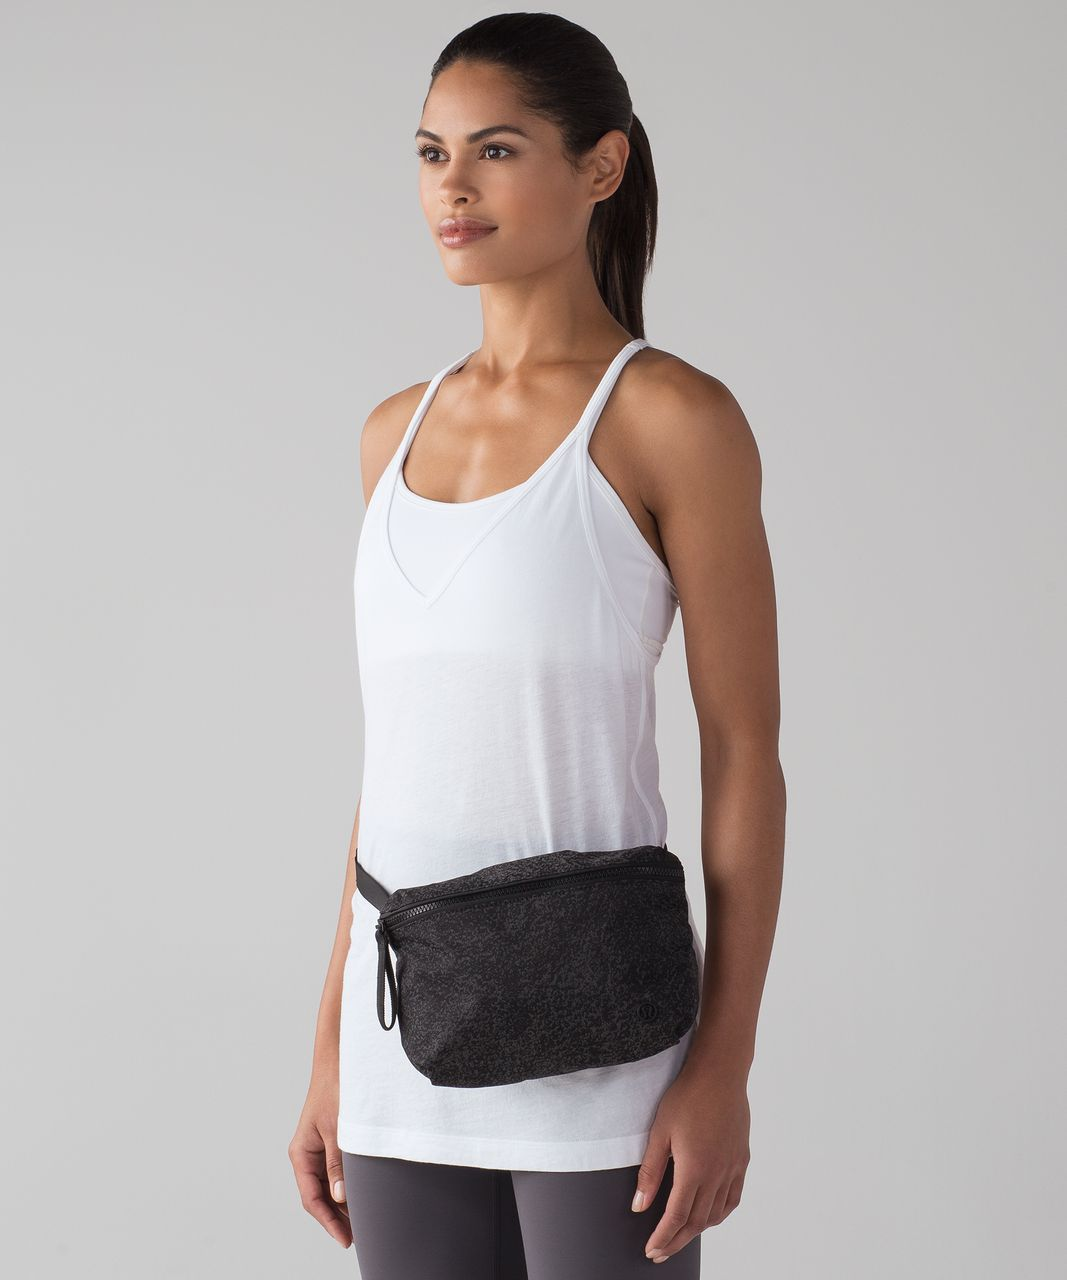 Lululemon Go Lightly Belt Bag Reflective Glo Wild Black